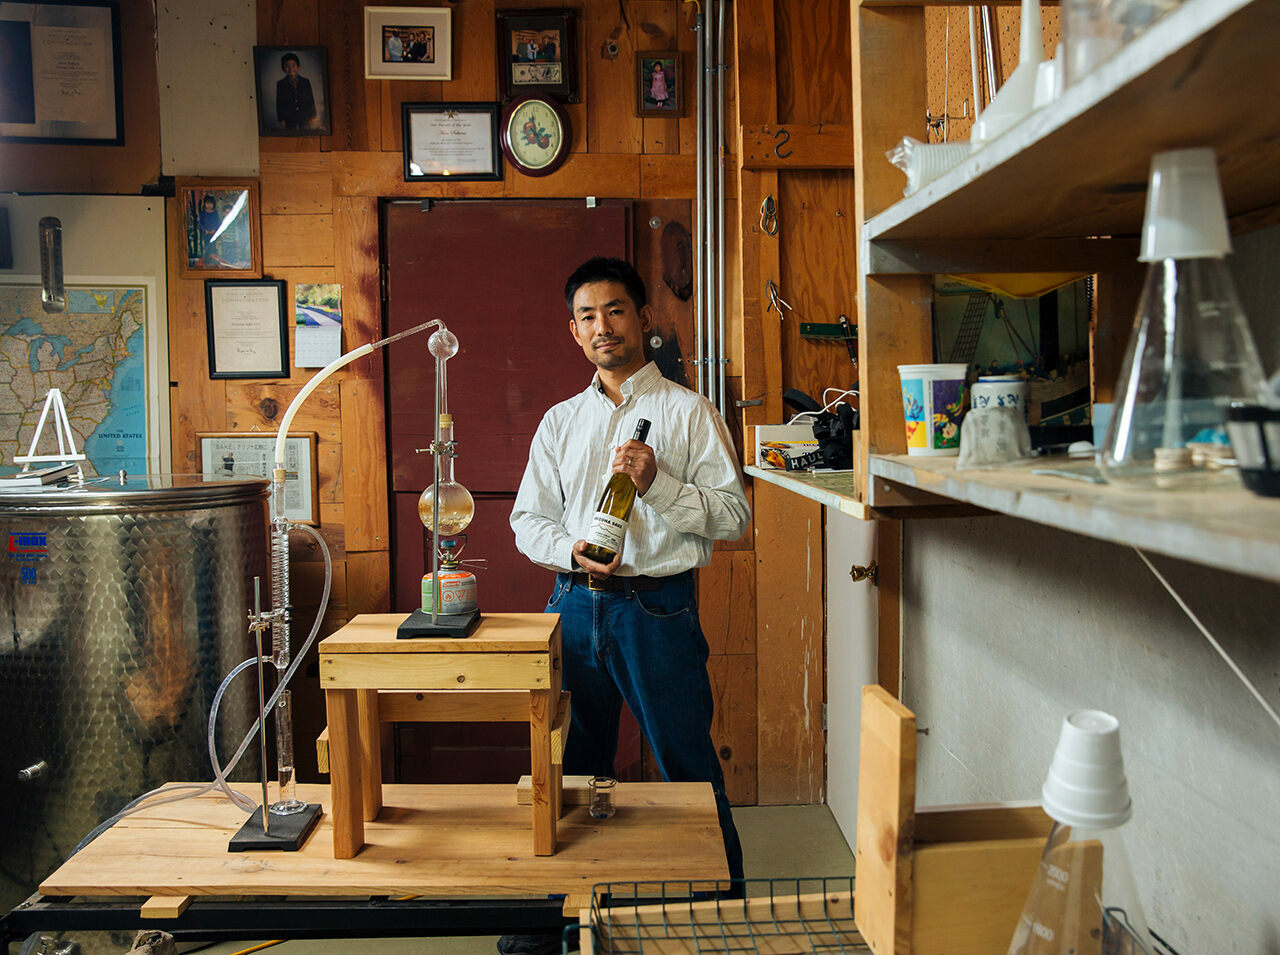 Atsuo Sakurai poses with his Arizona Sake equipment in Holbrook, Arizona.